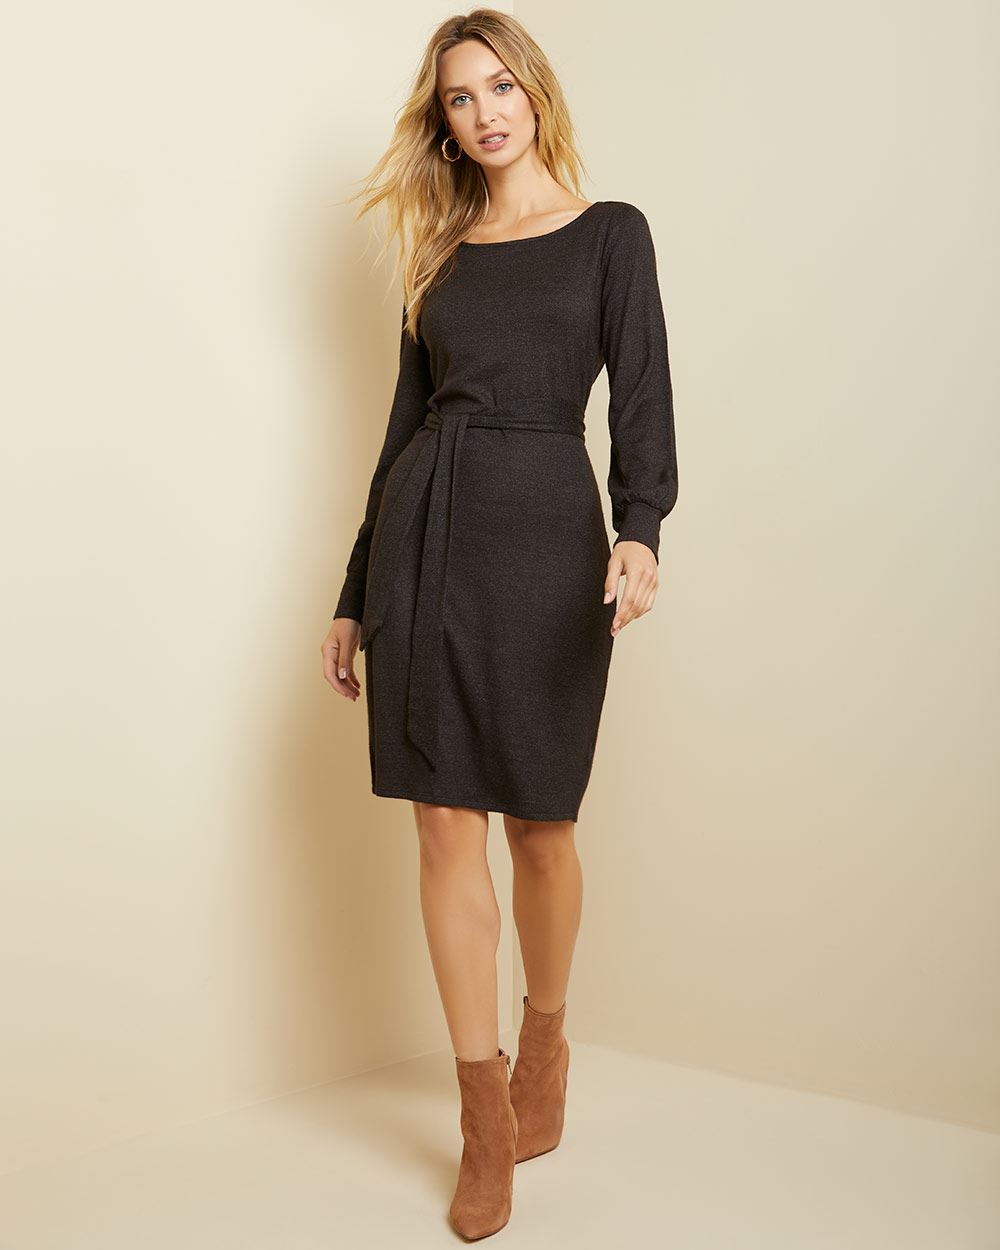 Belted Bodycon Brushed Knit Dress by Rw & Co